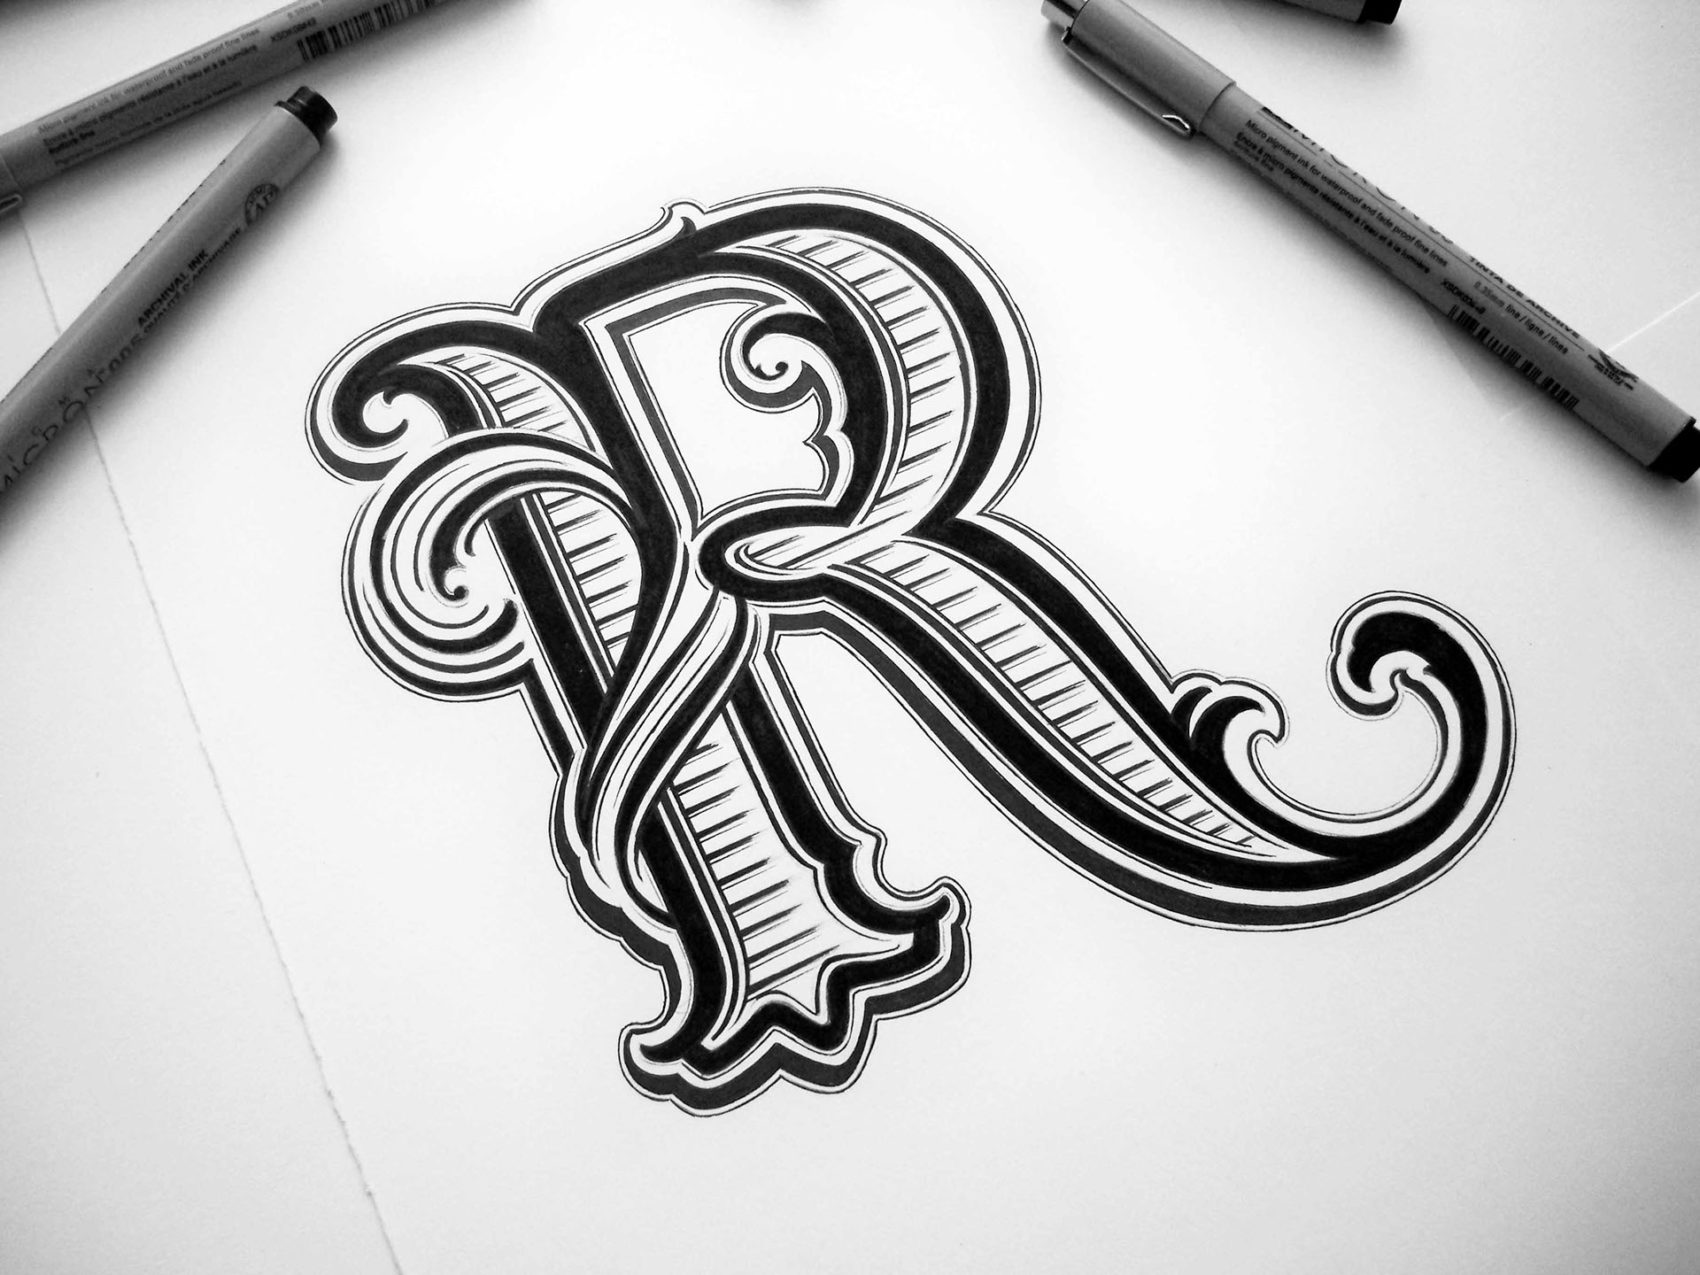 Wonderful Hand Lettering by Mateusz Witczak